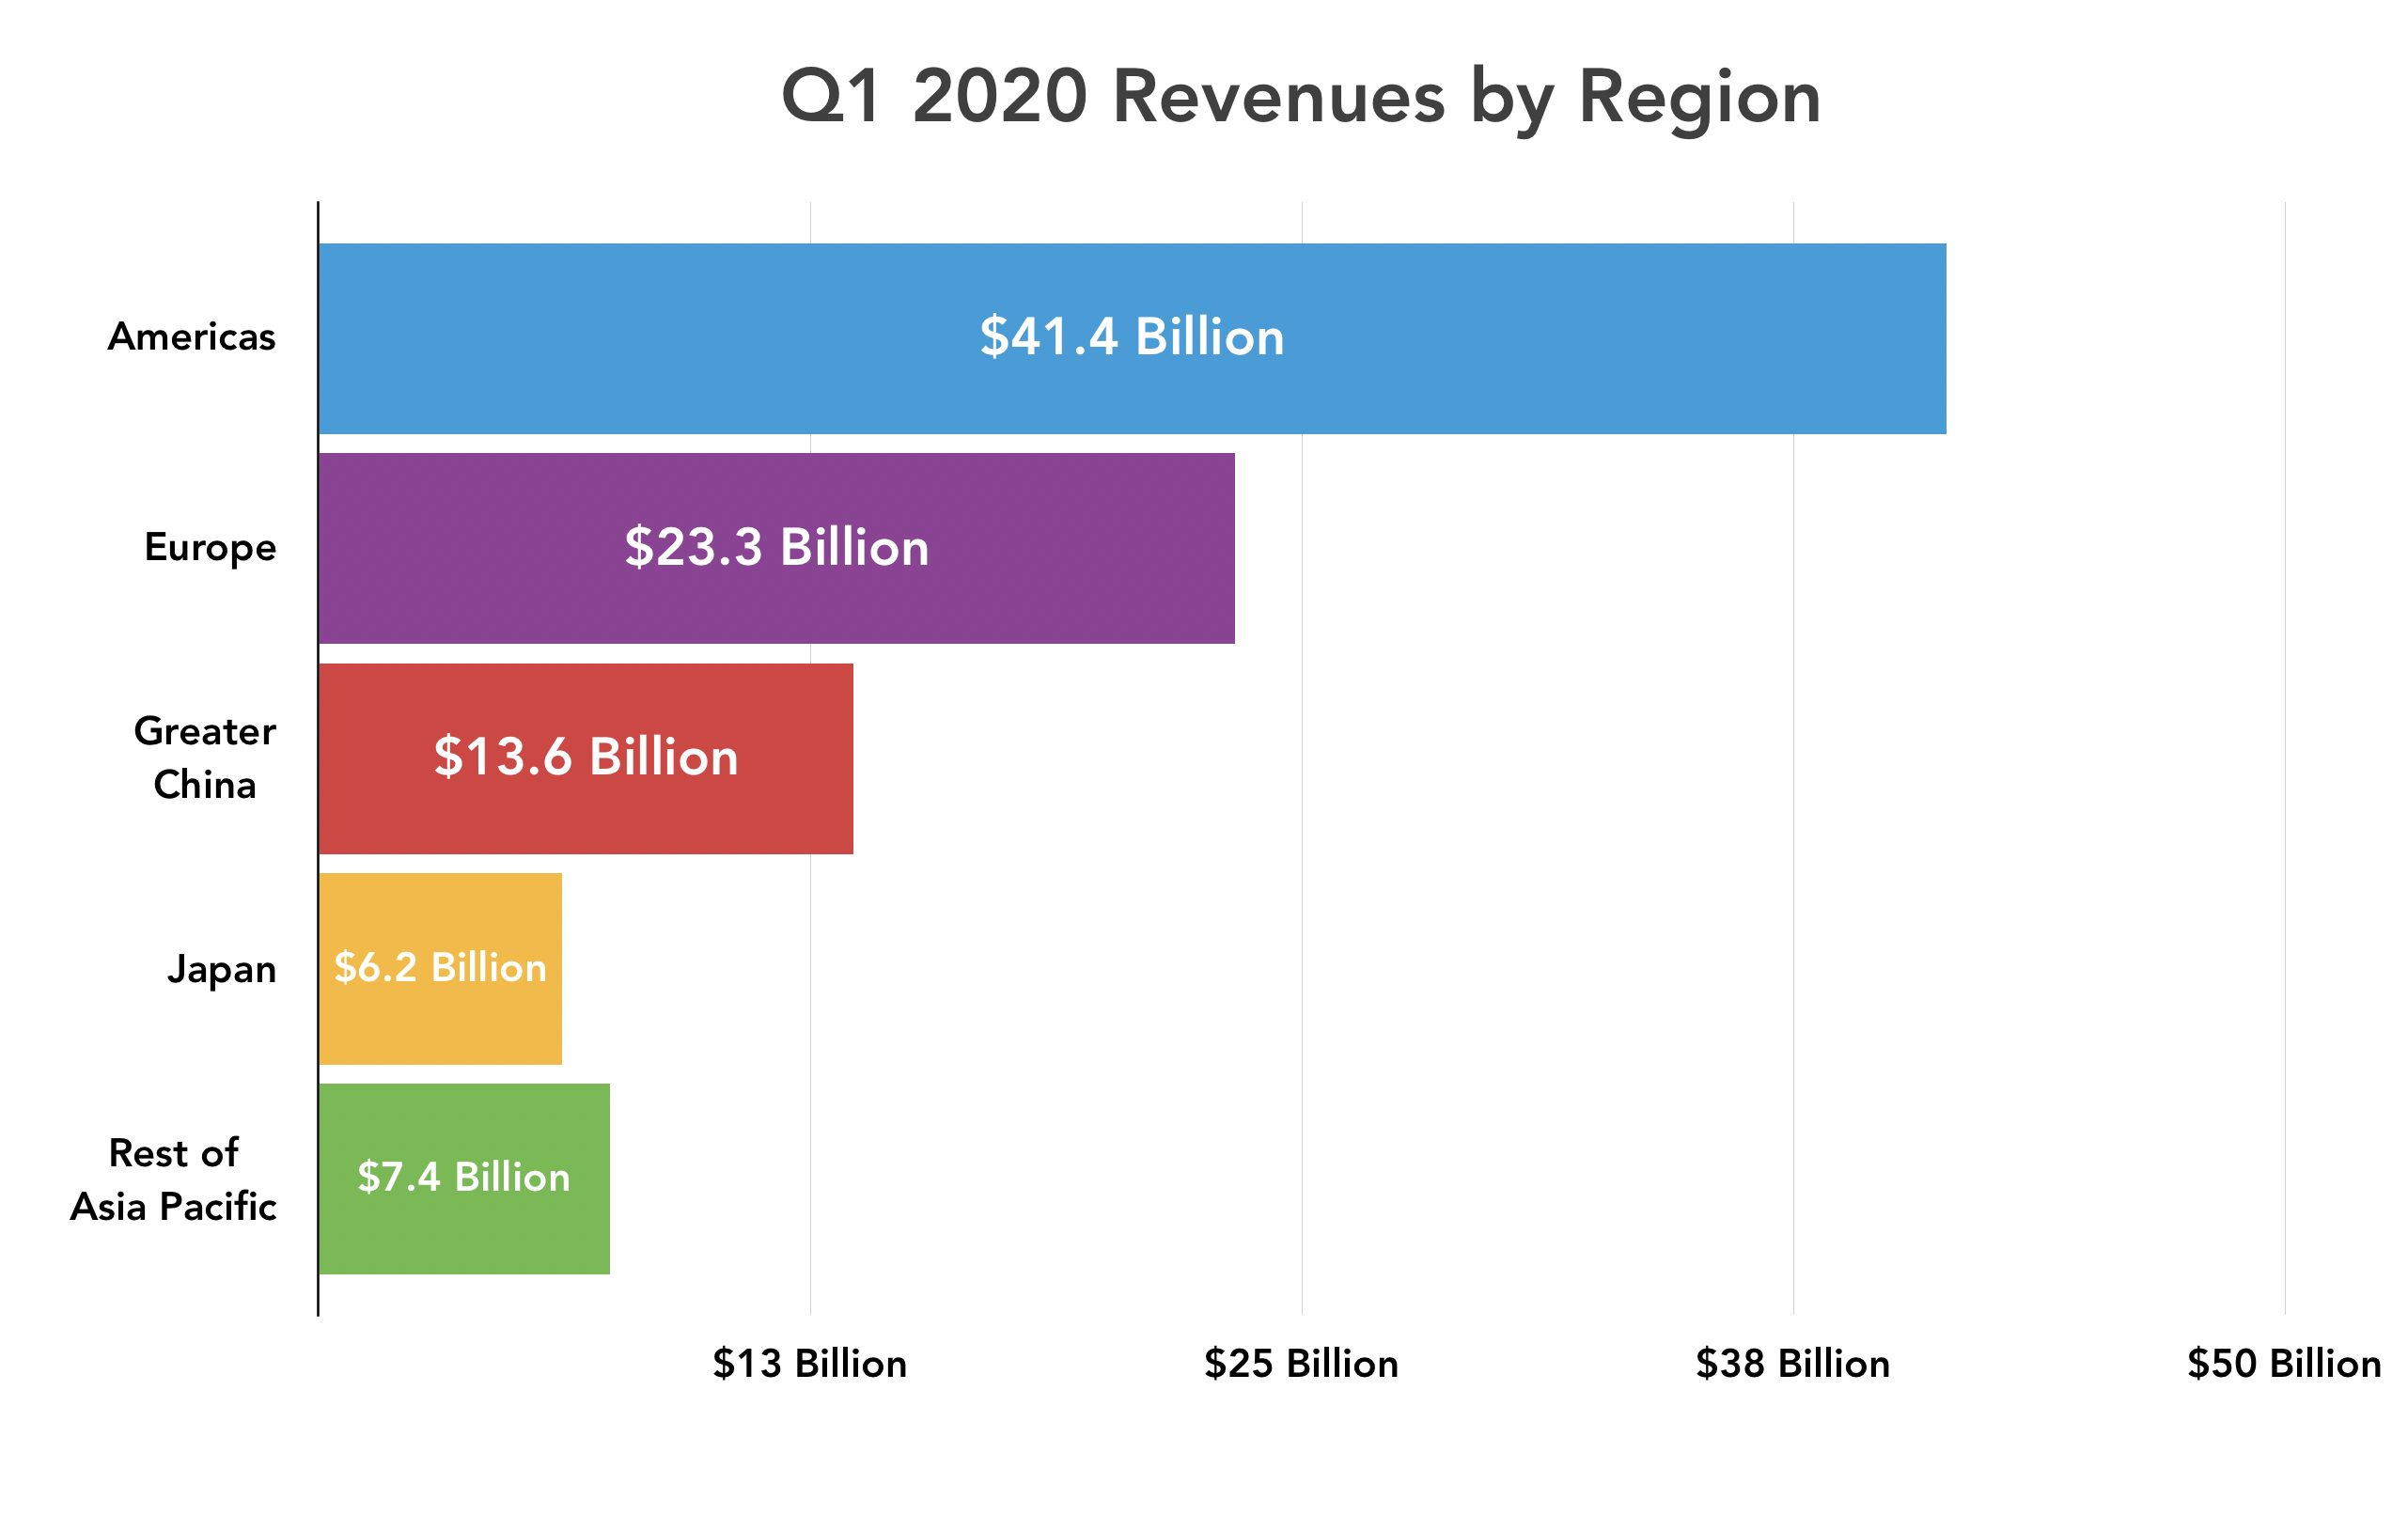 Q1 2020 revenues by region